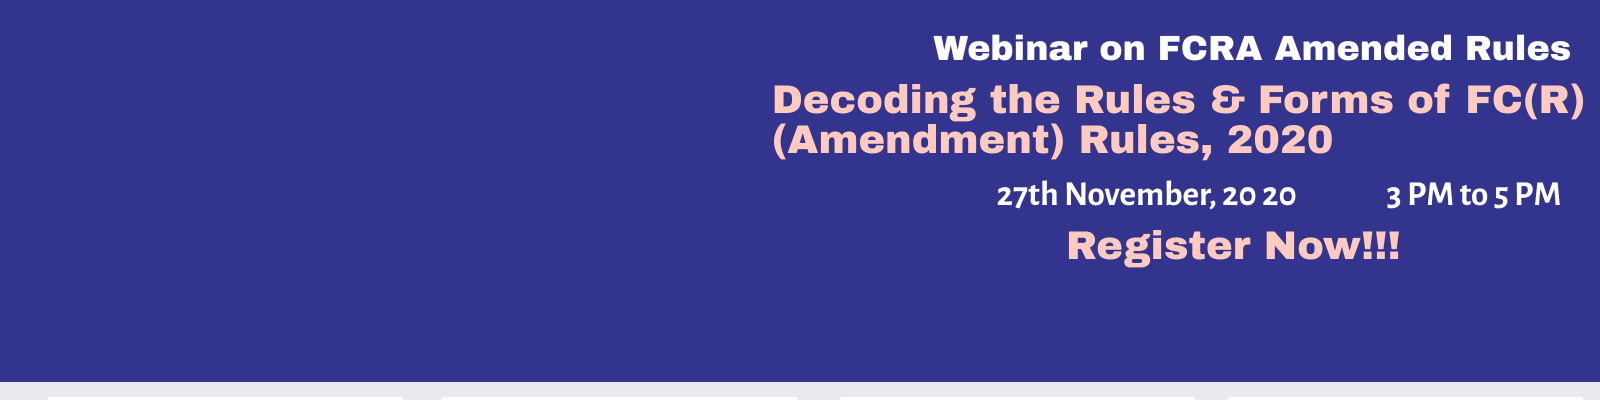 Webinar on FCRA Amended Rules